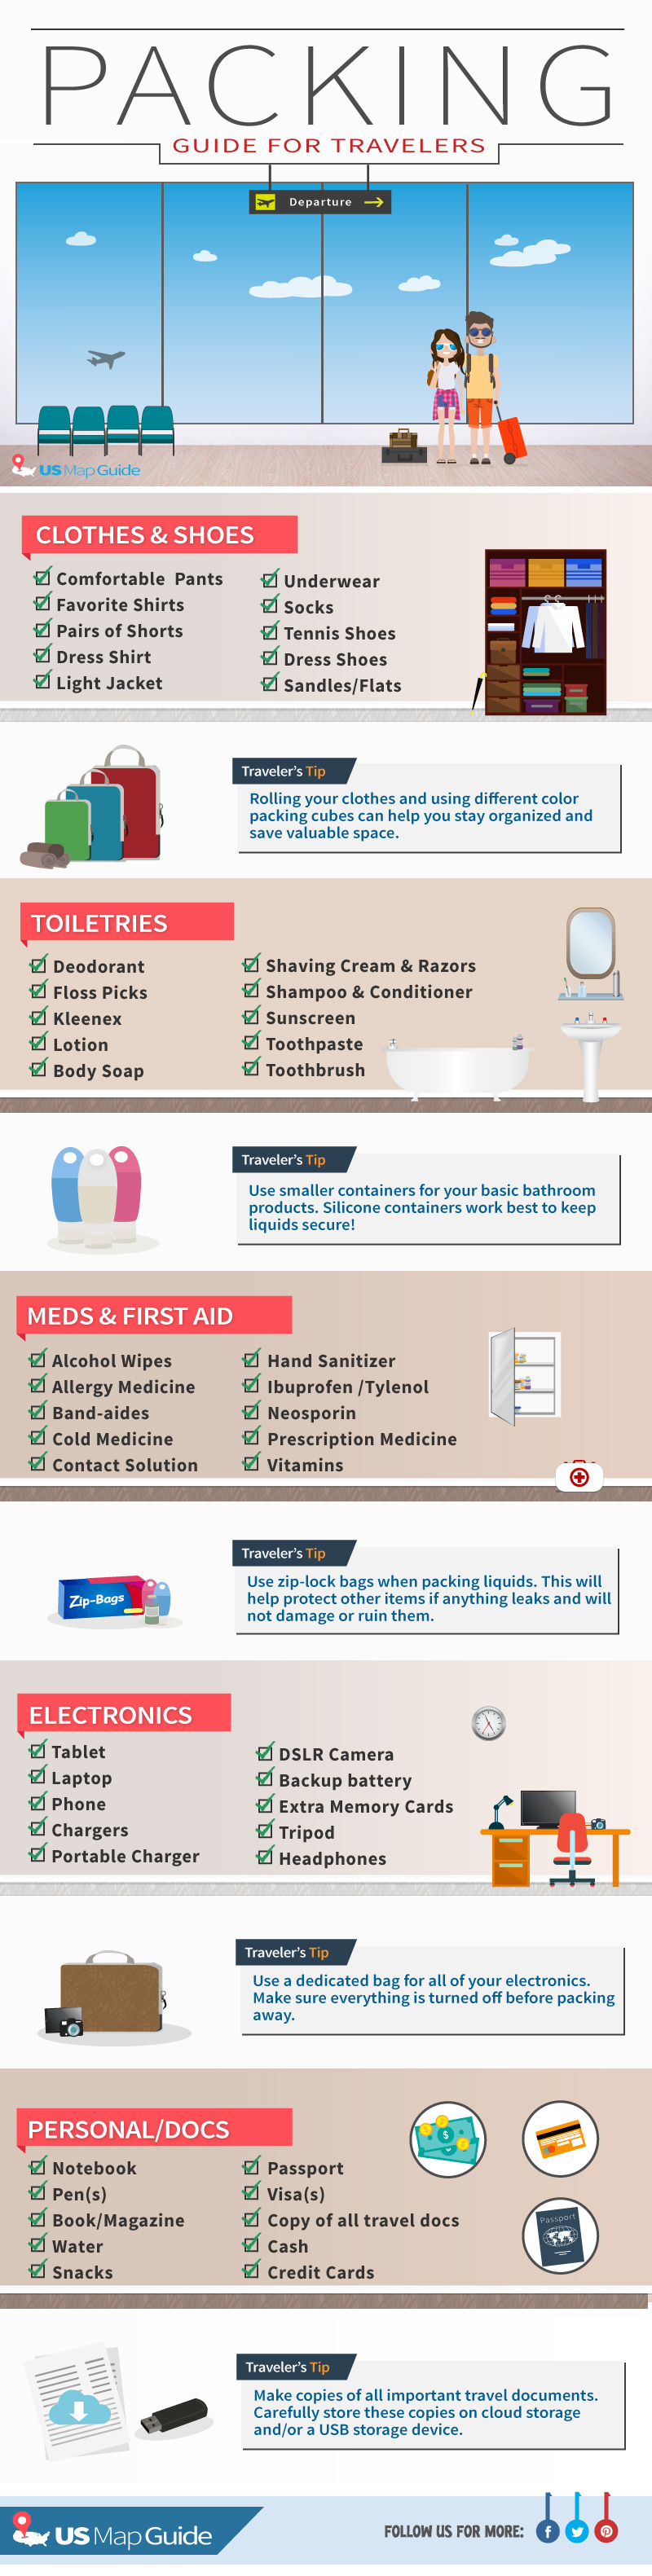 Ultimate packing tips for travelers - infographic